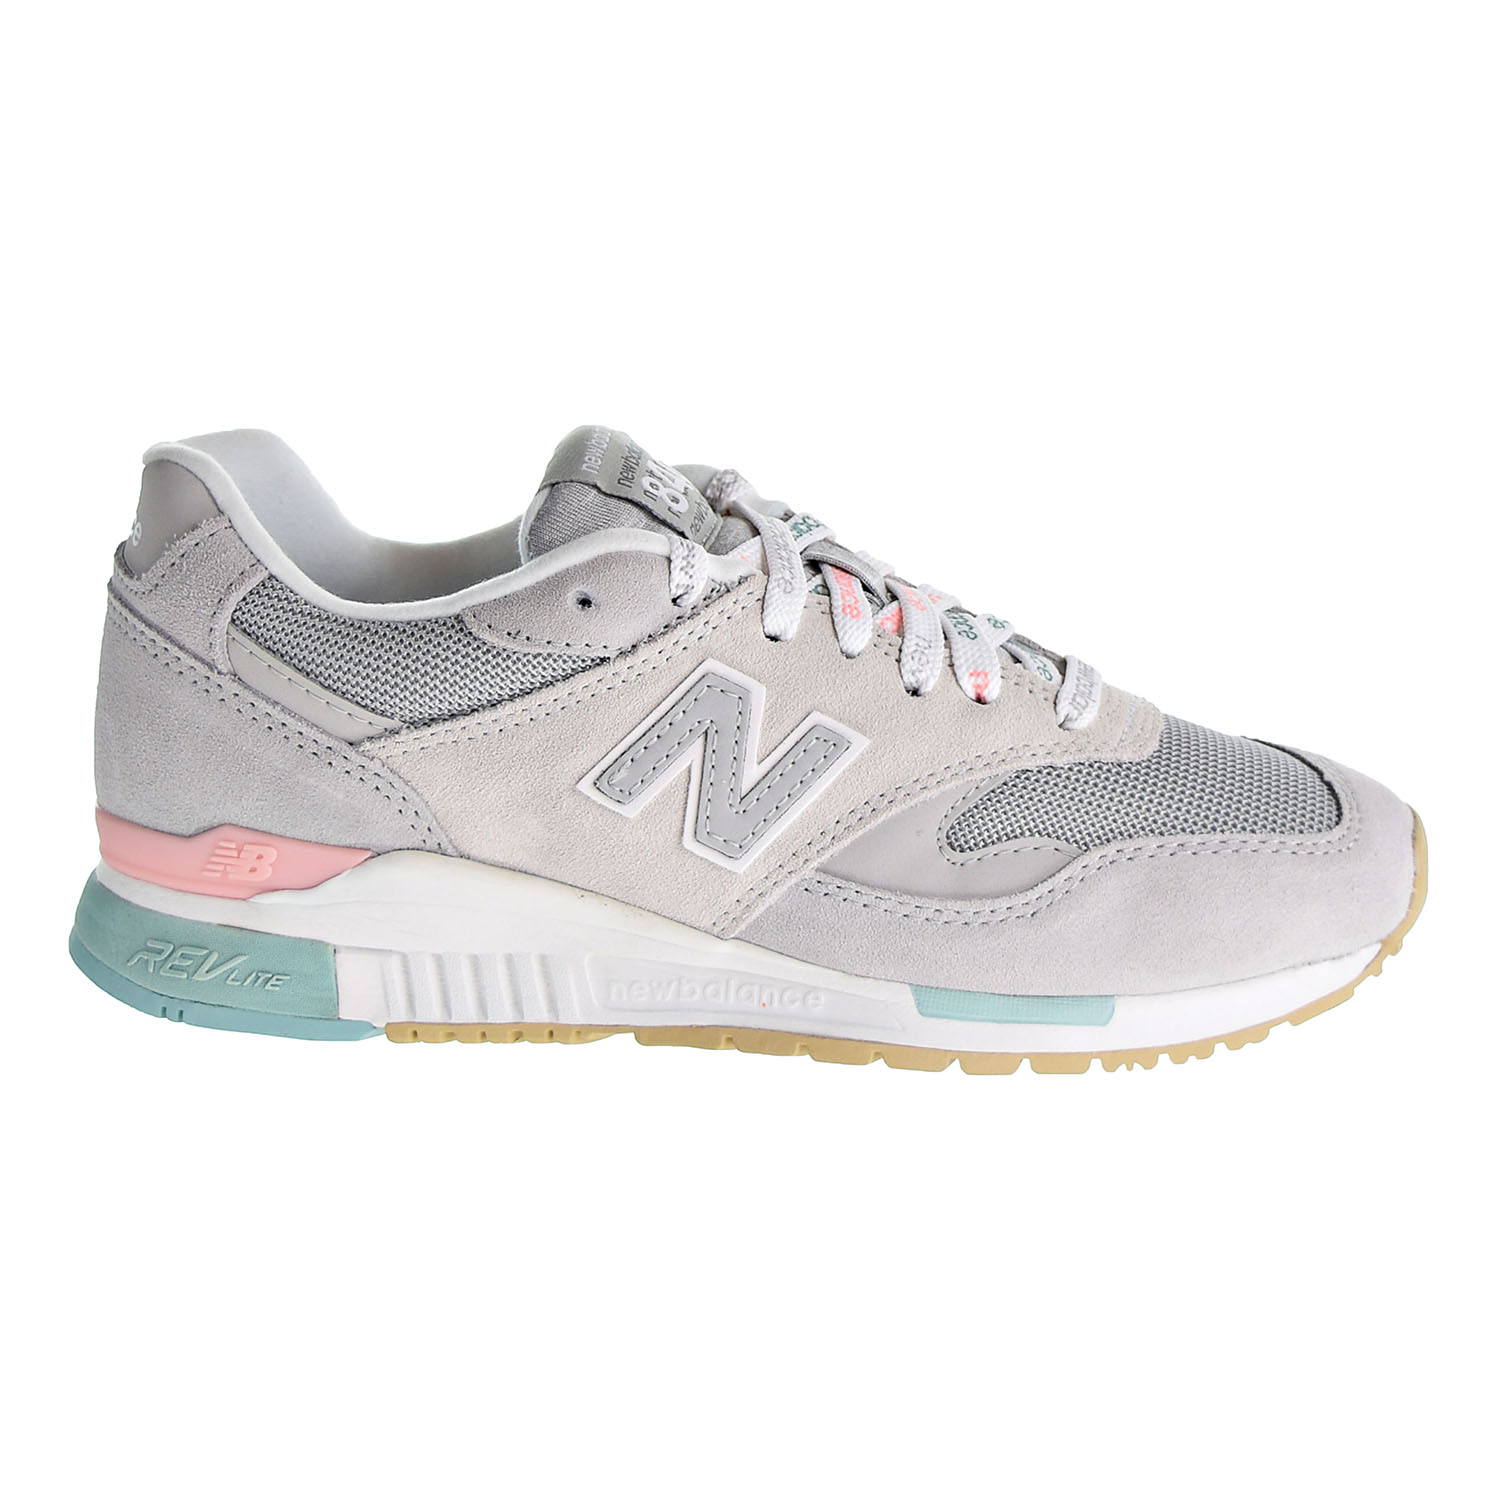 Details about New Balance 840 Classics Women's Shoes Rain Cloud WL840-RTN